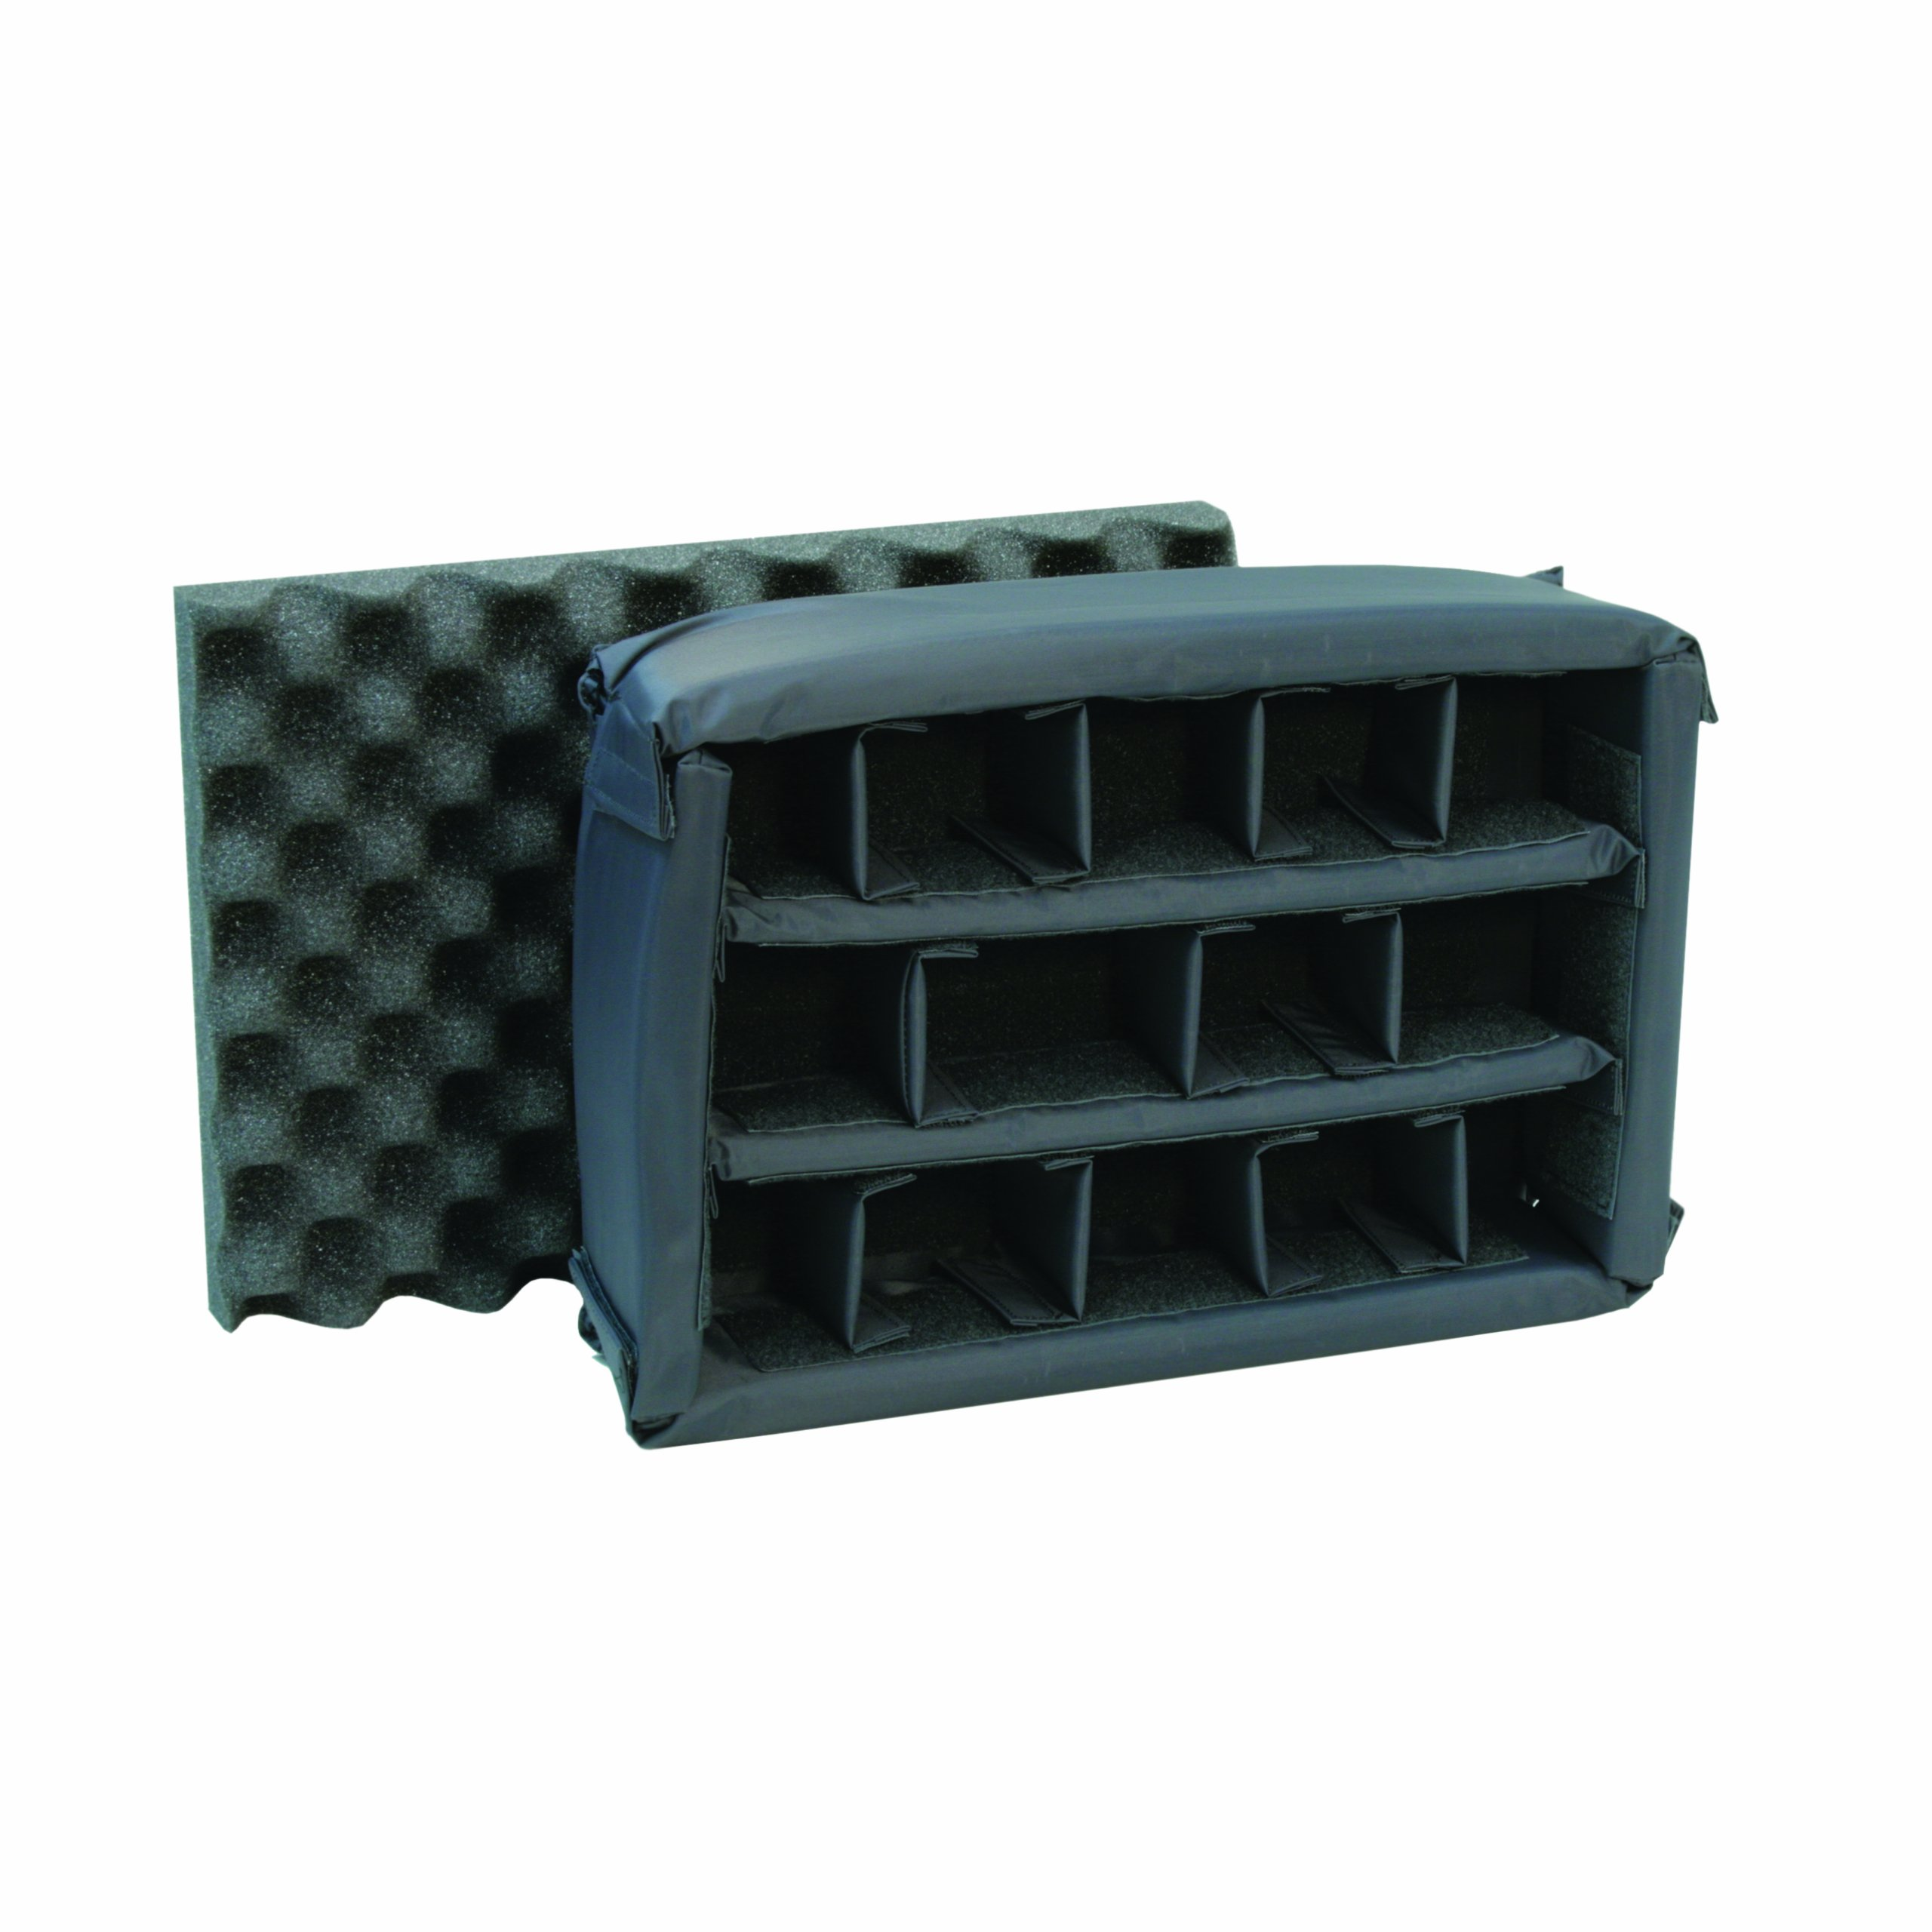 Padded Divider for 920 Nanuk Case by Plasticase, Inc.